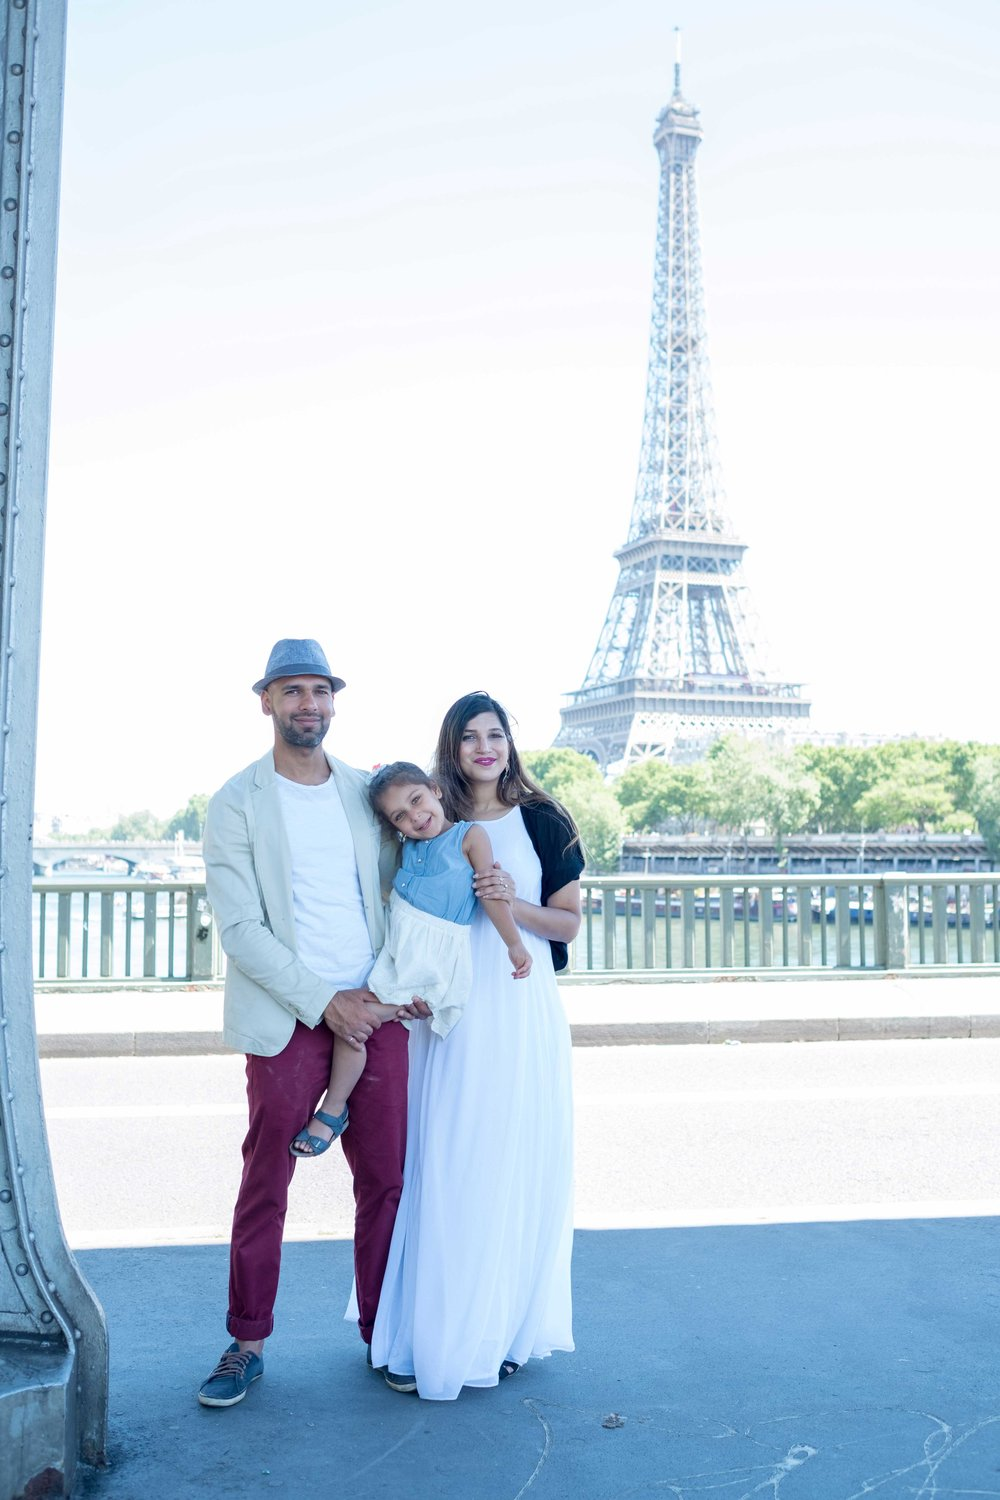 gaya family - What do you get when you take a beautiful mom-to-be, a stylish dad, and an impossibly adorable three-year old and put them in Paris? Adorable family photos with Paris as a backdrop!I loved working with this family, and wish them so much happiness with the new addition to their family!See more images here